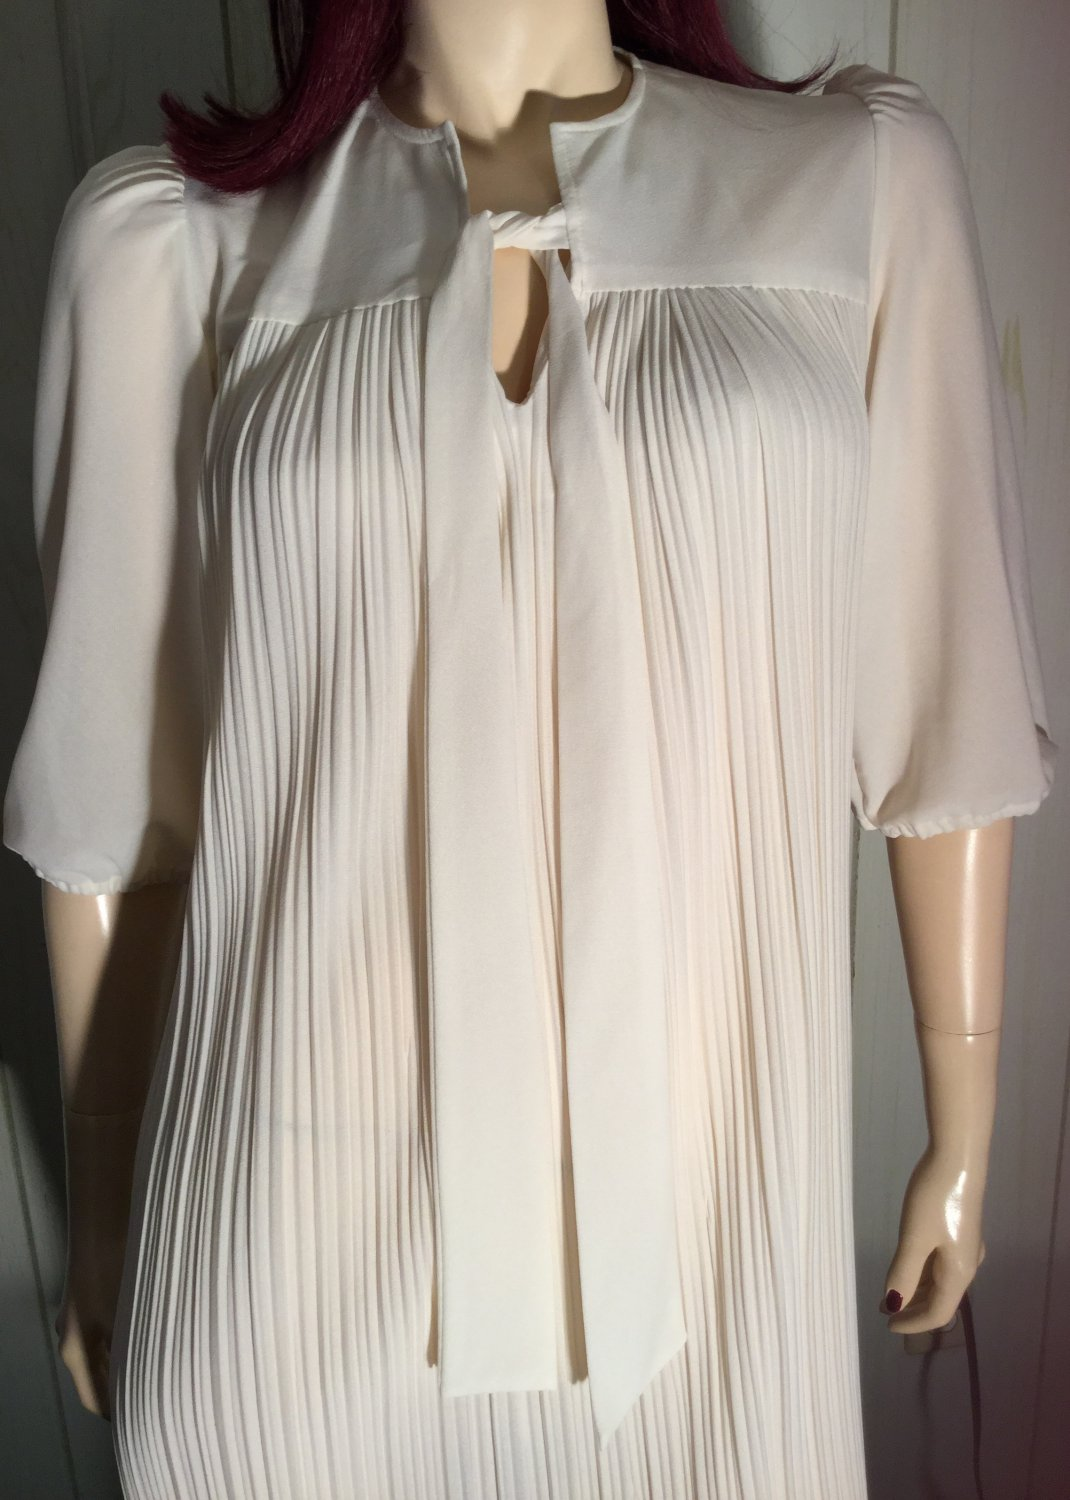 MOD Crystal Pleats Tie Neck Vintage 70's Mini Party Dress M/L